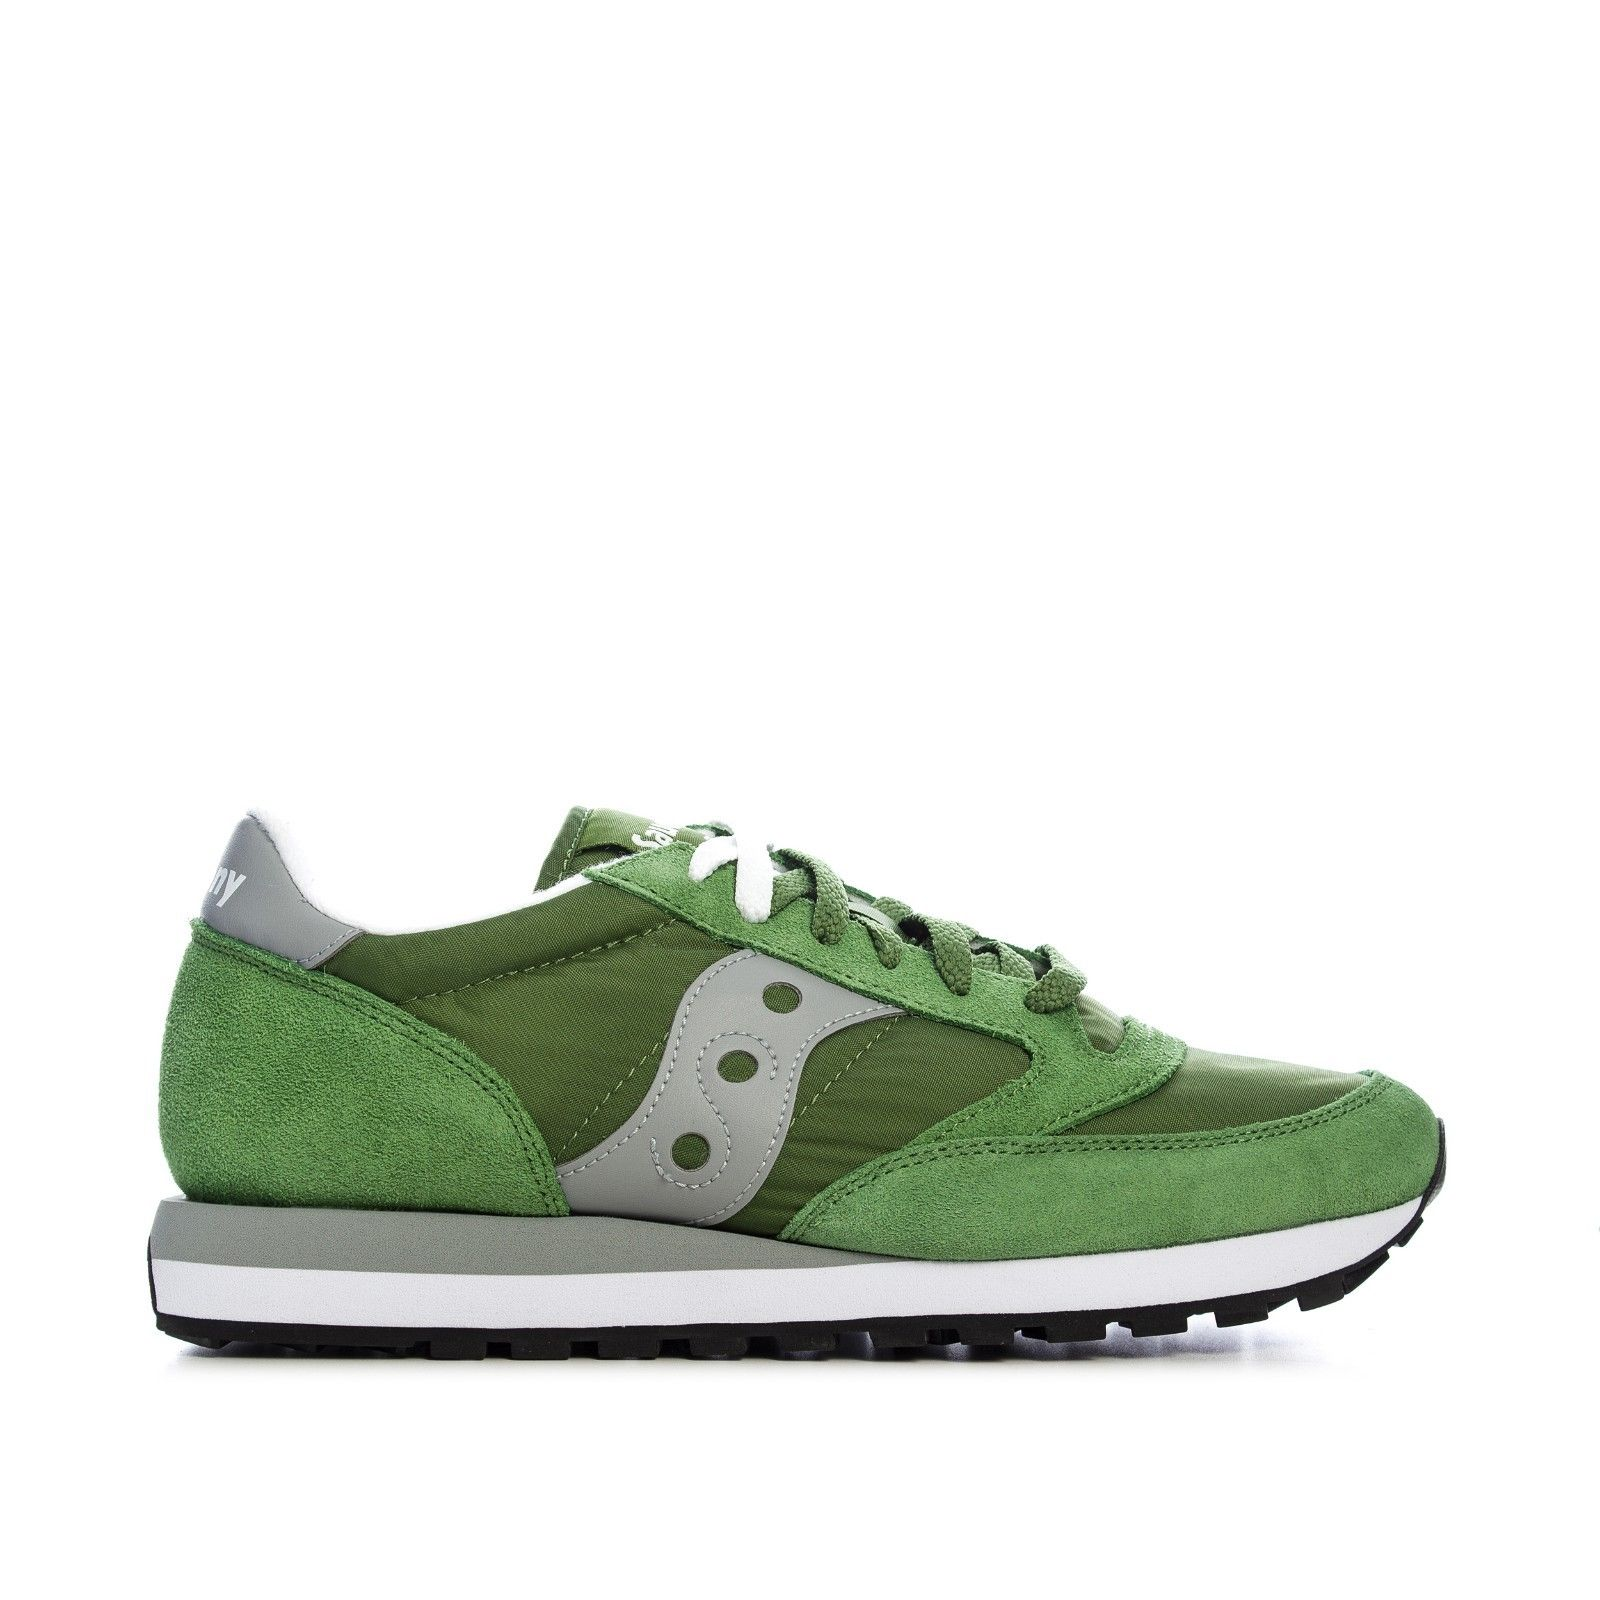 SCARPE SNEAKERS CASUAL UOMO SAUCONY ORIGINALE JAZZ S2044 SHOES PELLE P/E